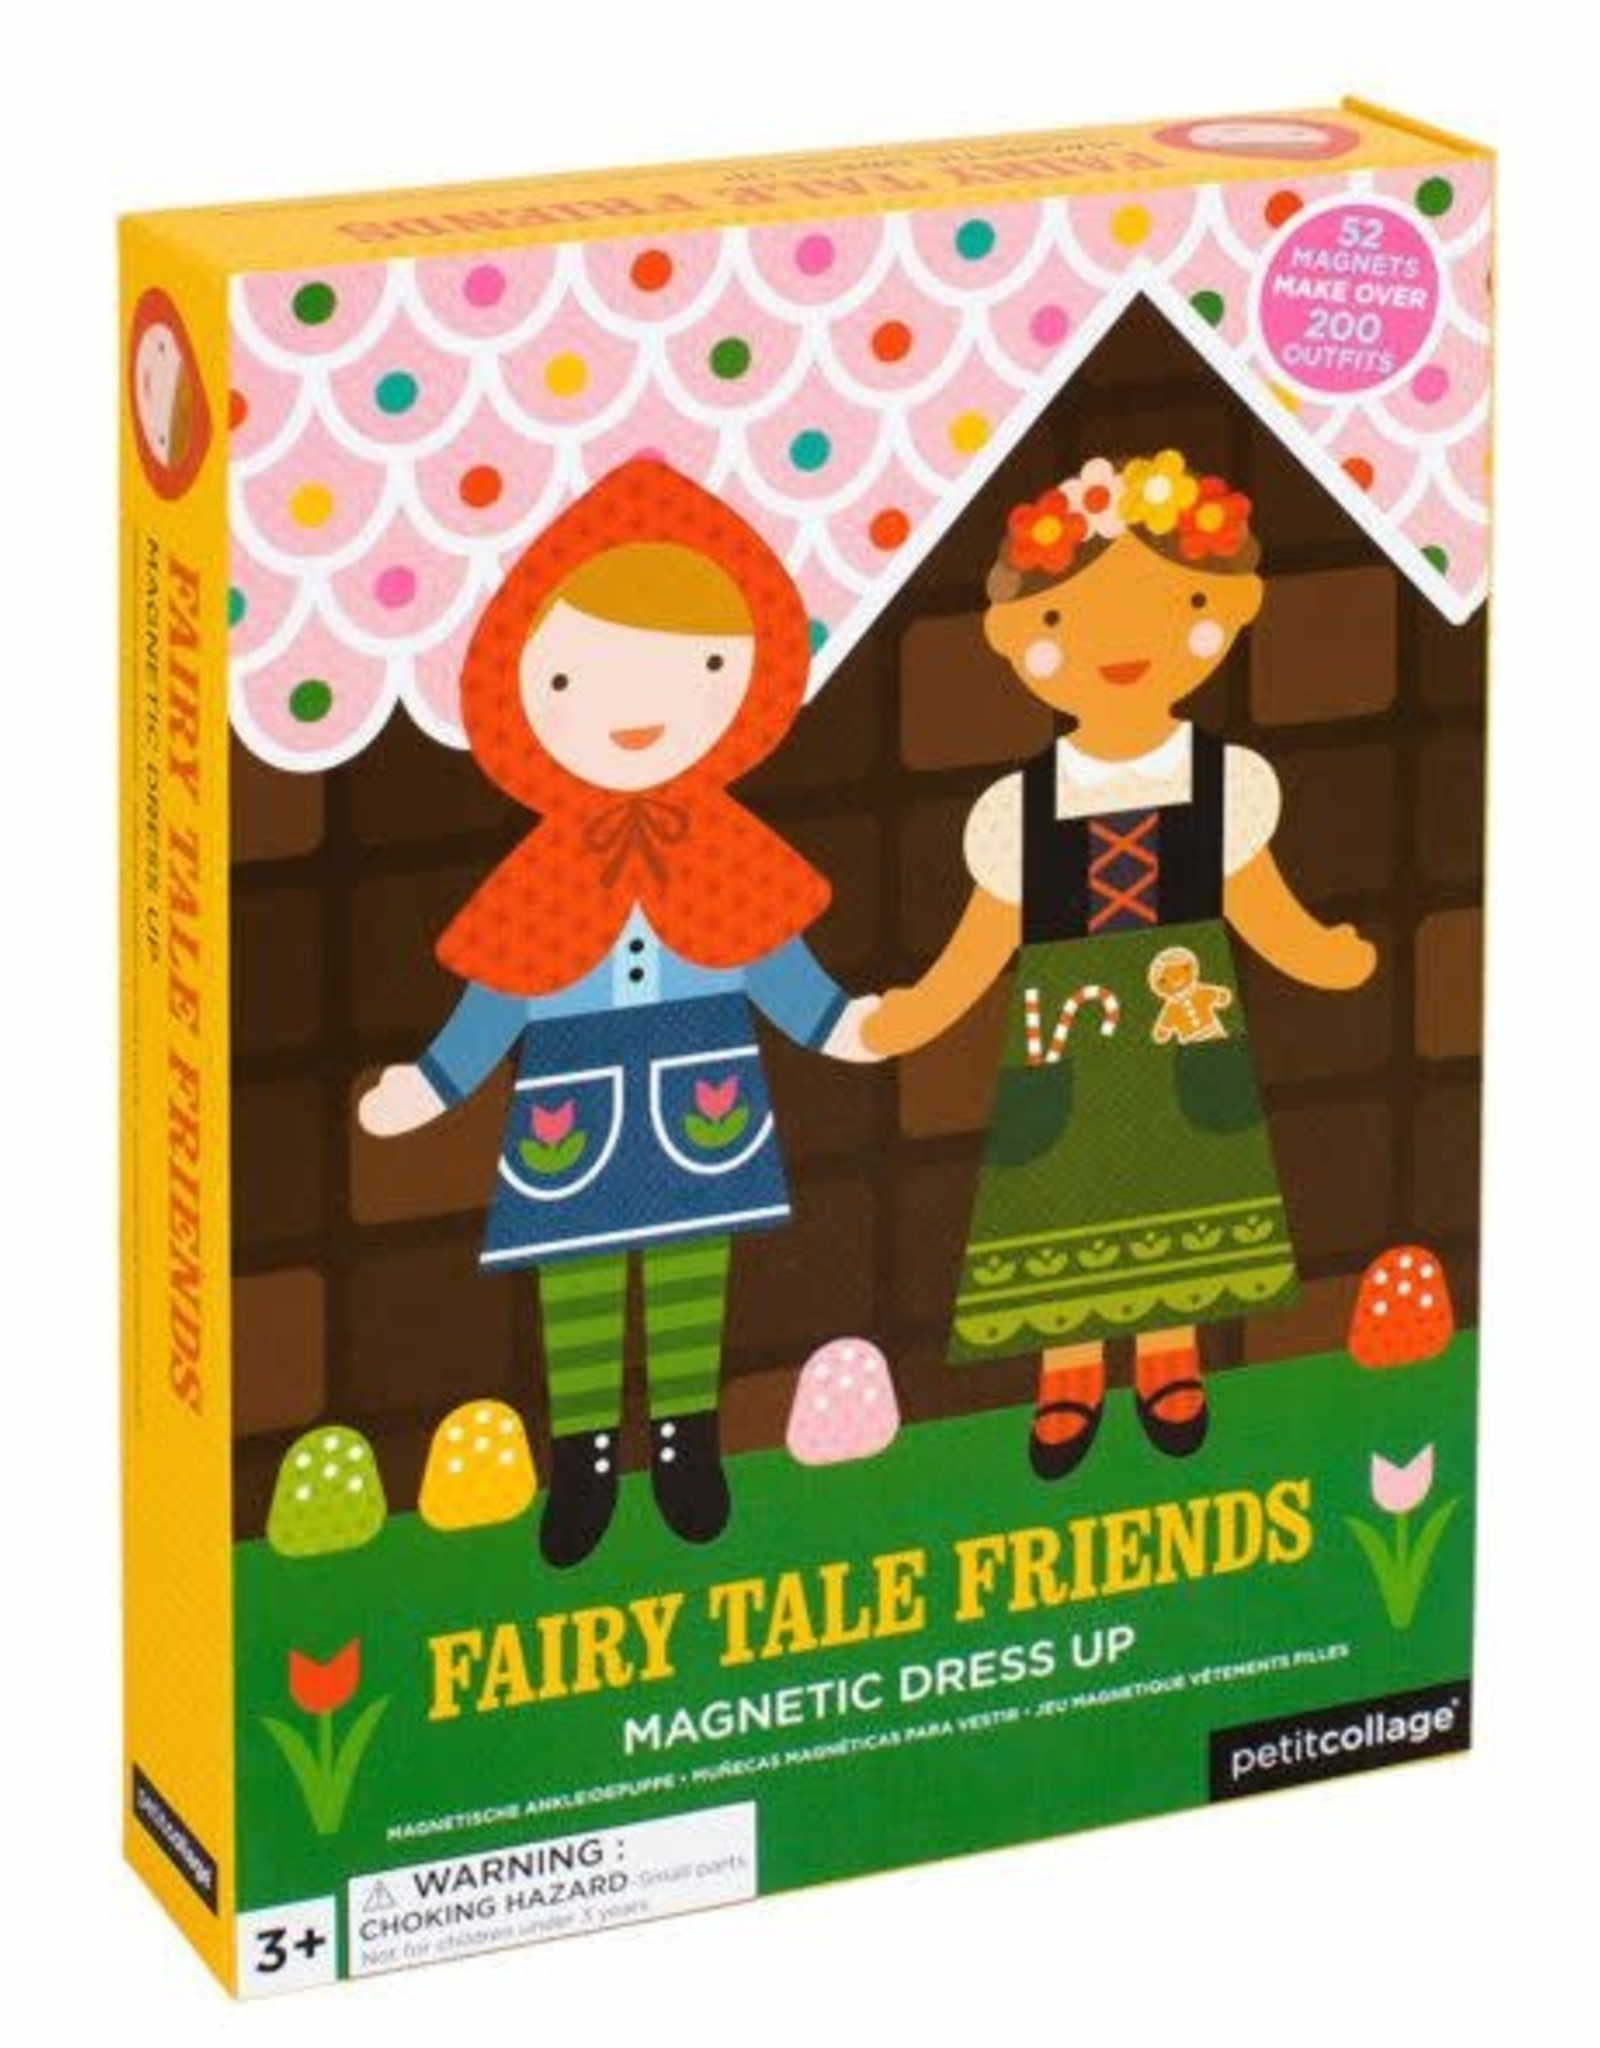 Petit Collage Magnetic Dress Up - Fairytale Friends